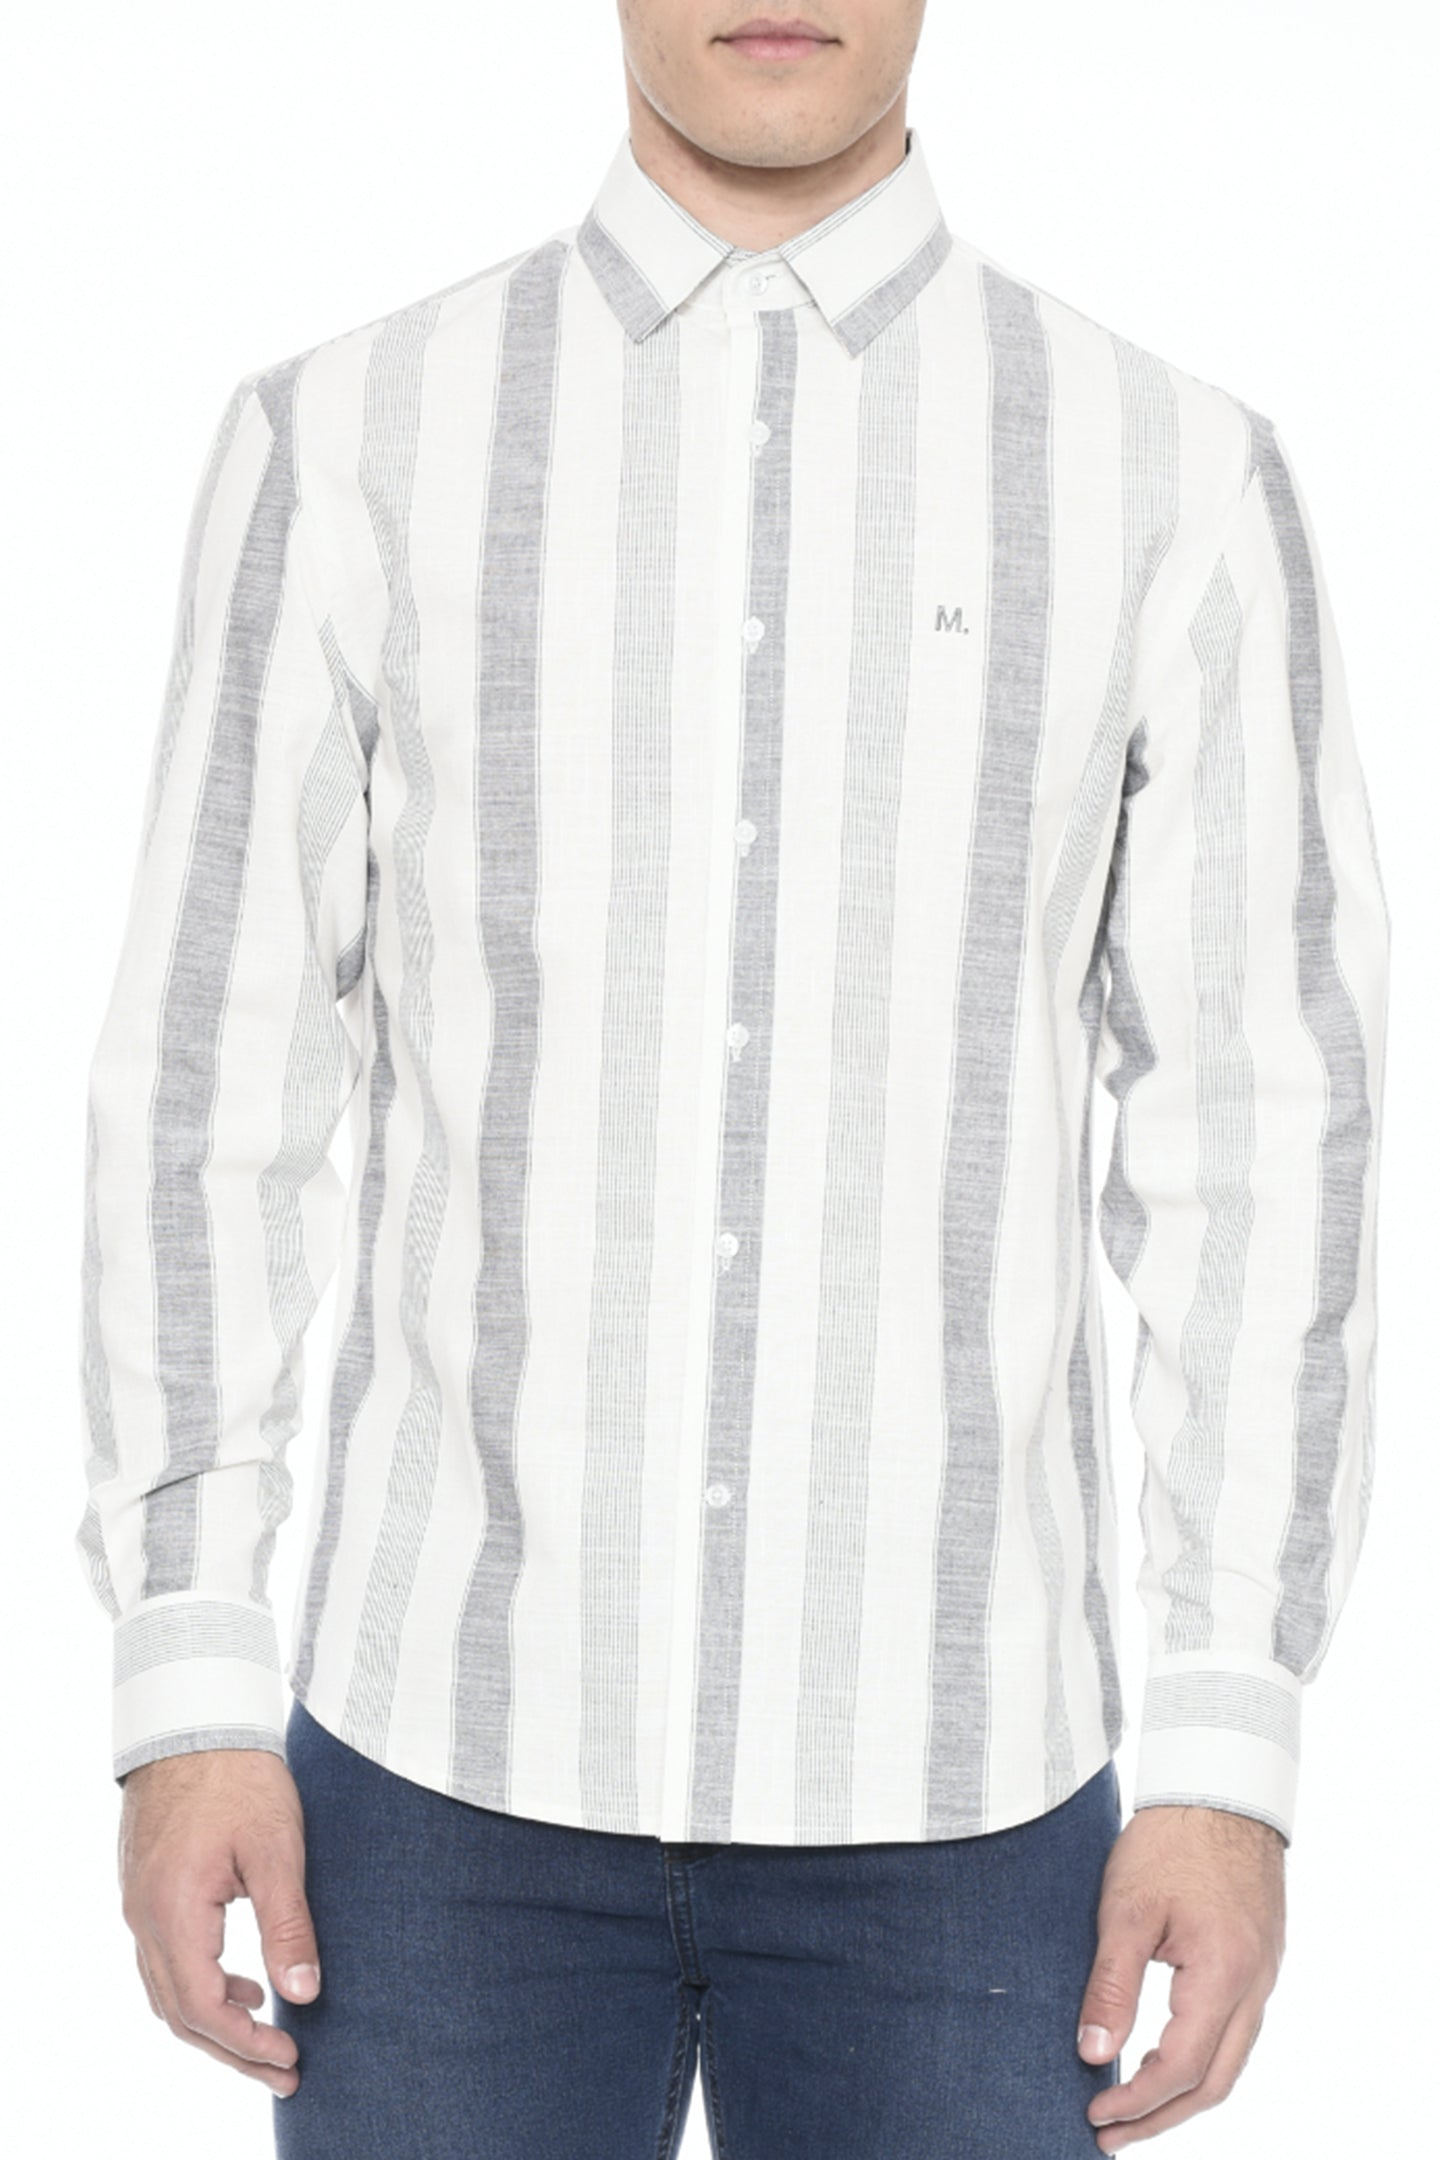 CAMISA COMFORT M/L LISTRAS MARTINGALE CASUAL